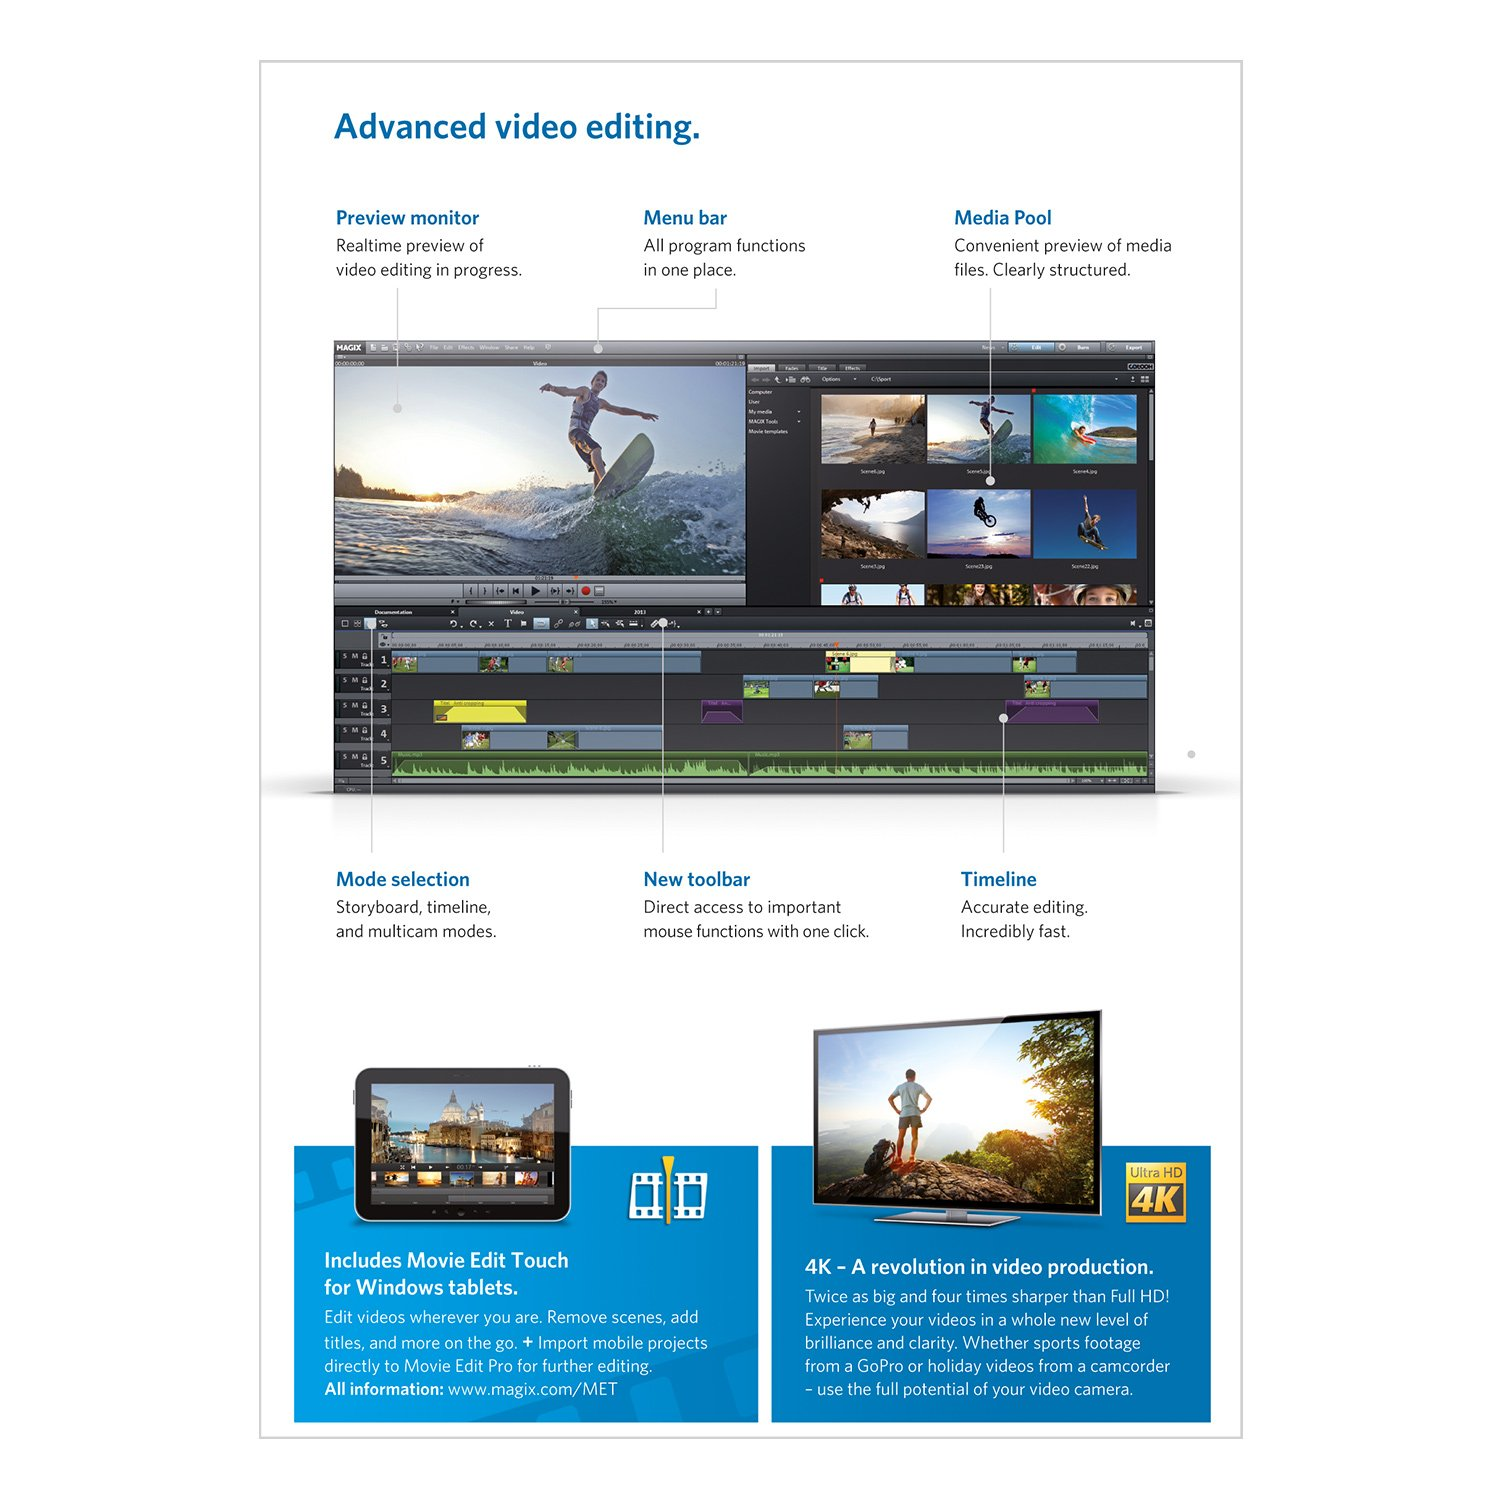 Magix movie edit pro 2014 plus free trial download for for Magix movie edit pro templates